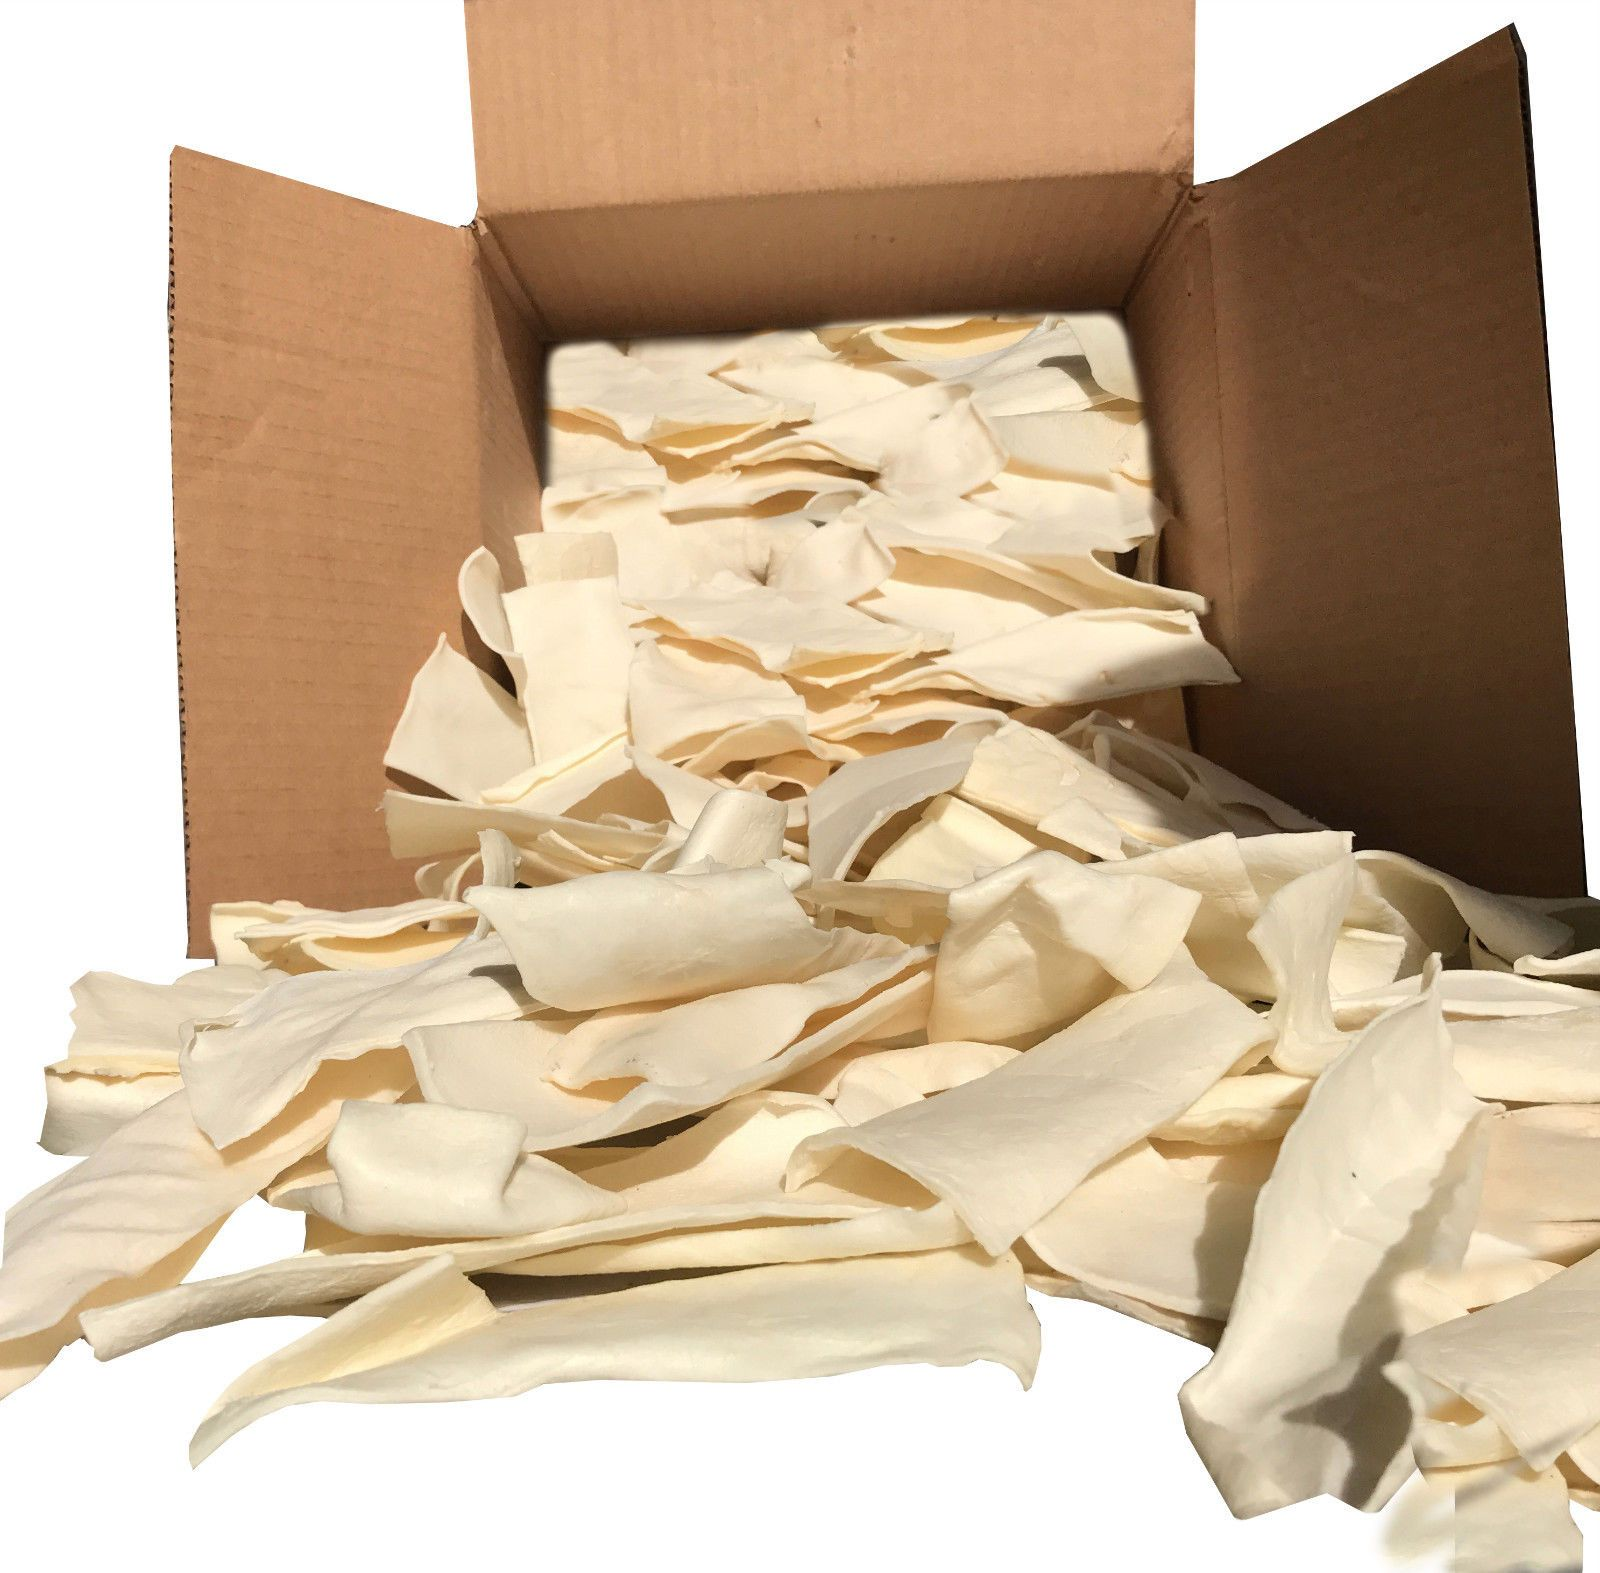 Natural Rawhide Chips For Dogs Bulk Beef Hide Dog Chews By 123